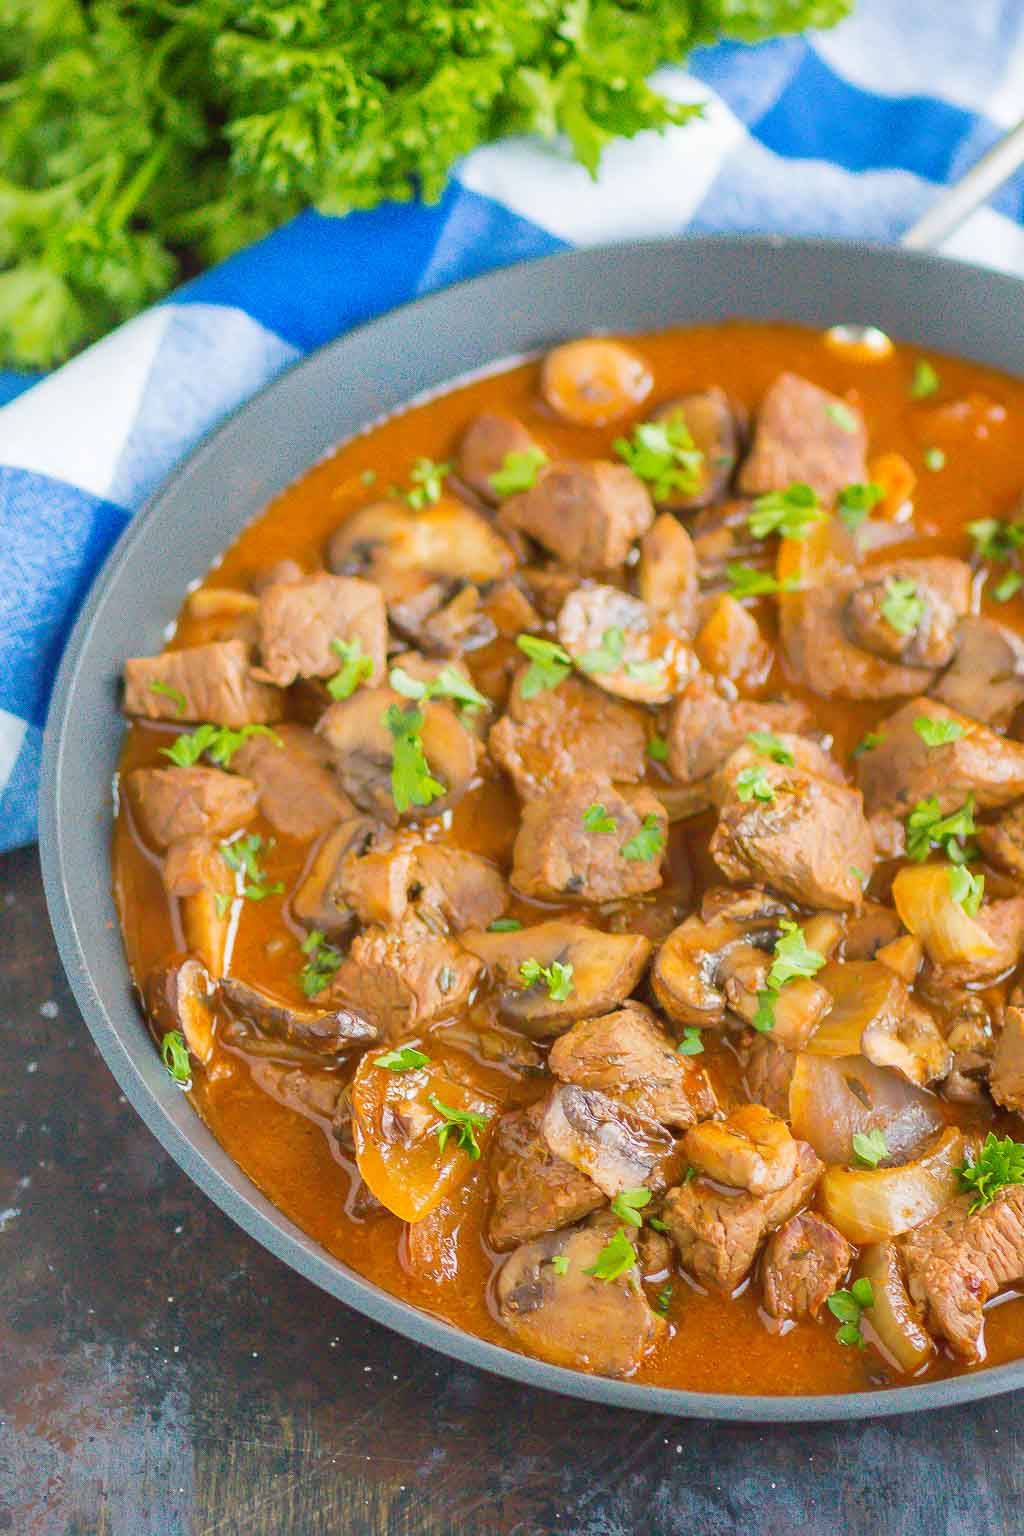 Beef Tips and Gravy make a simple, one pan meal that's ready in just 30 minutes. Tender beef tips are smothered in an easy and flavorful mushroom gravy. Serve on top of noodles or mashed potatoes for a deliciously hearty meal!